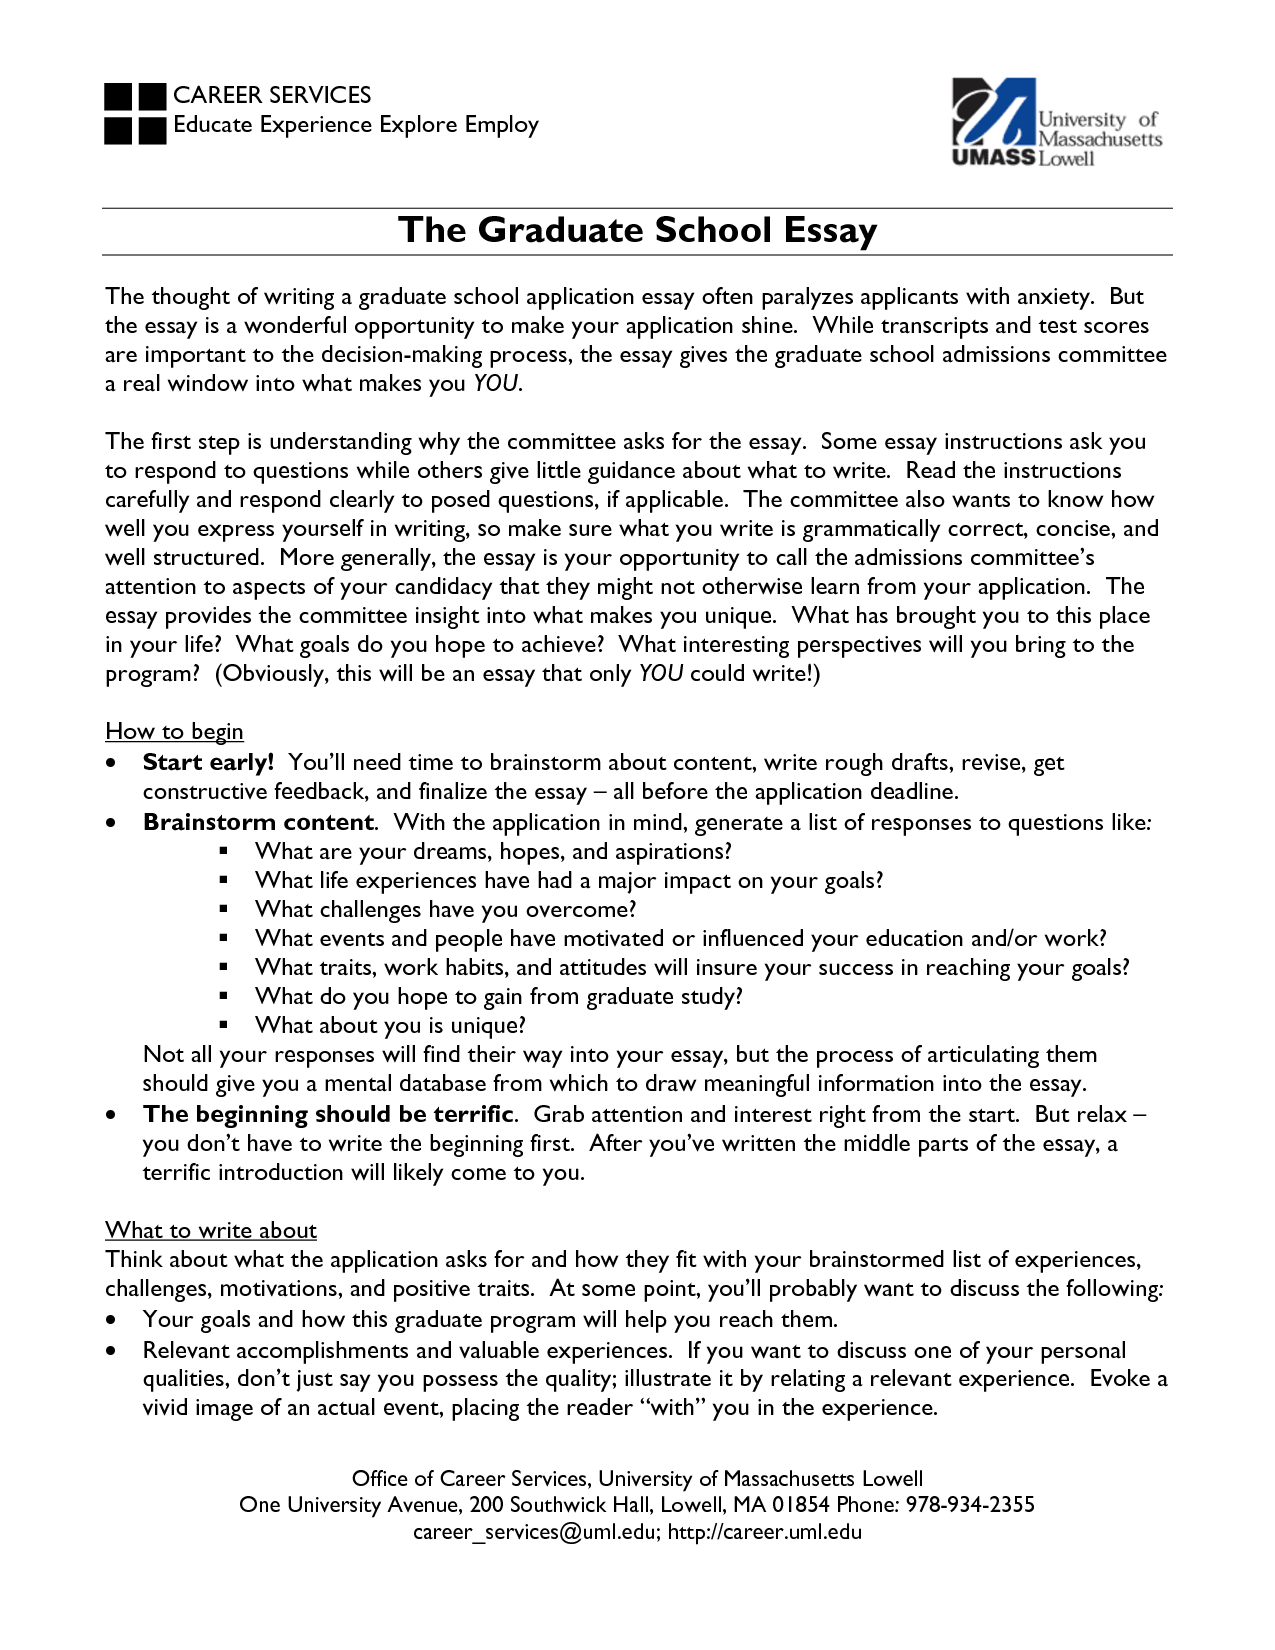 Ad analysis essay ideas